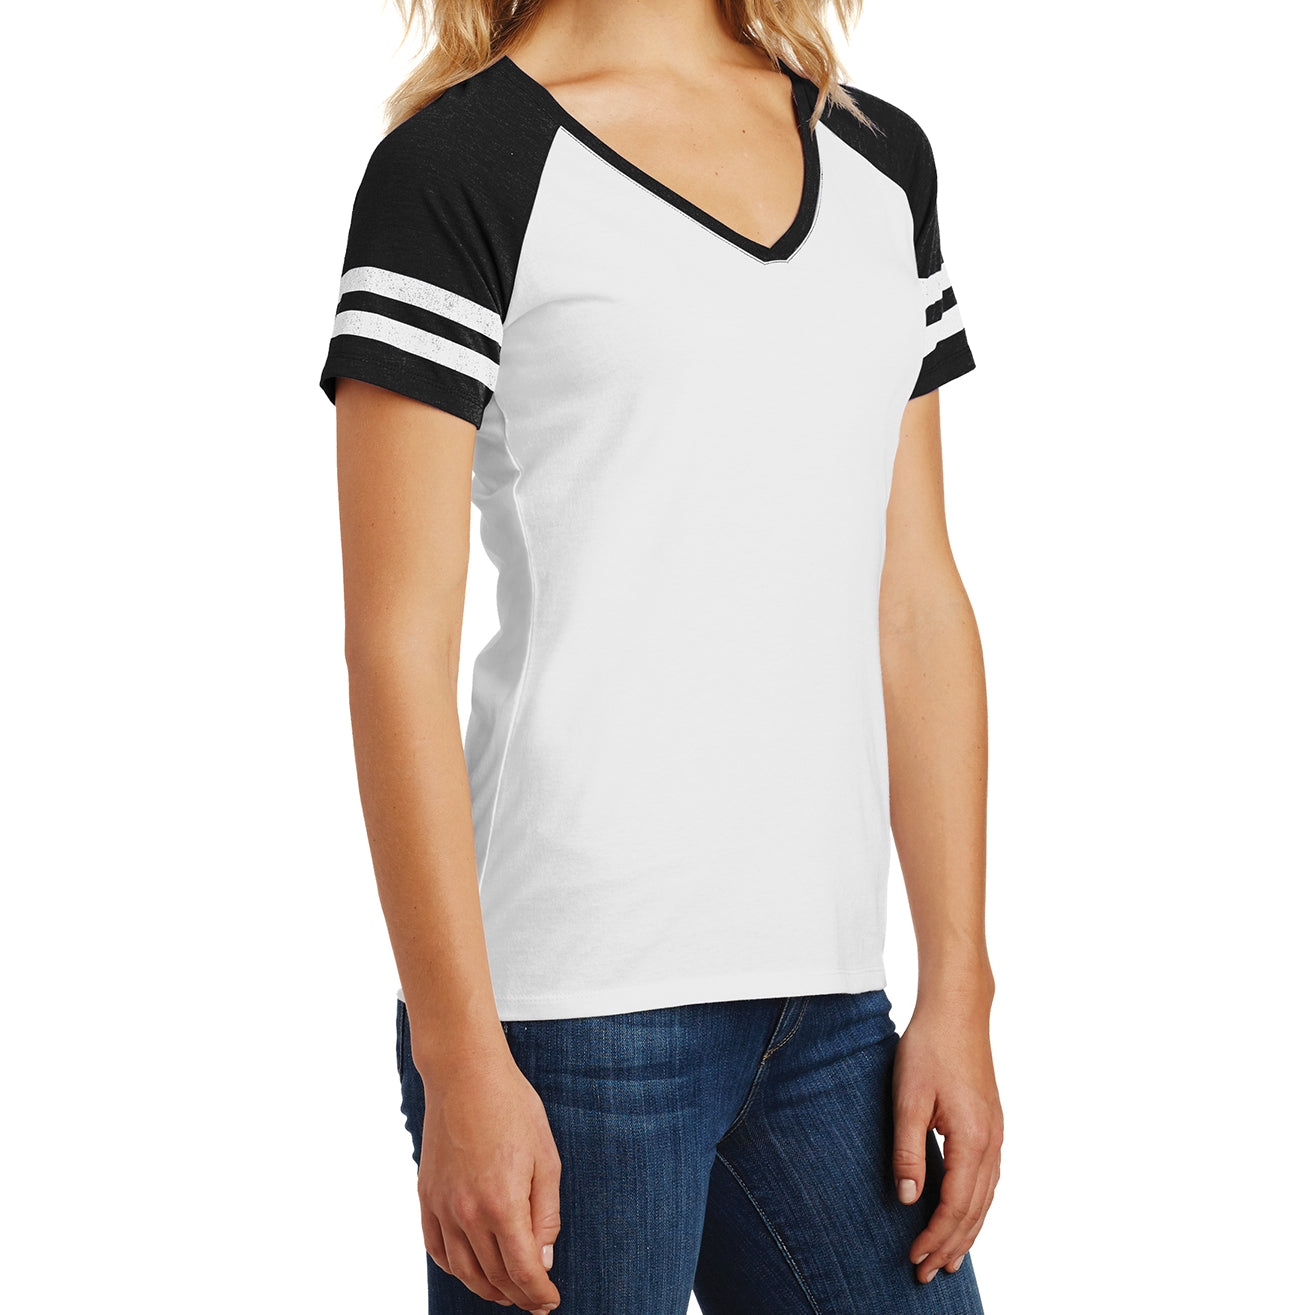 Womens Game V-Neck Tee - White/Black - Side